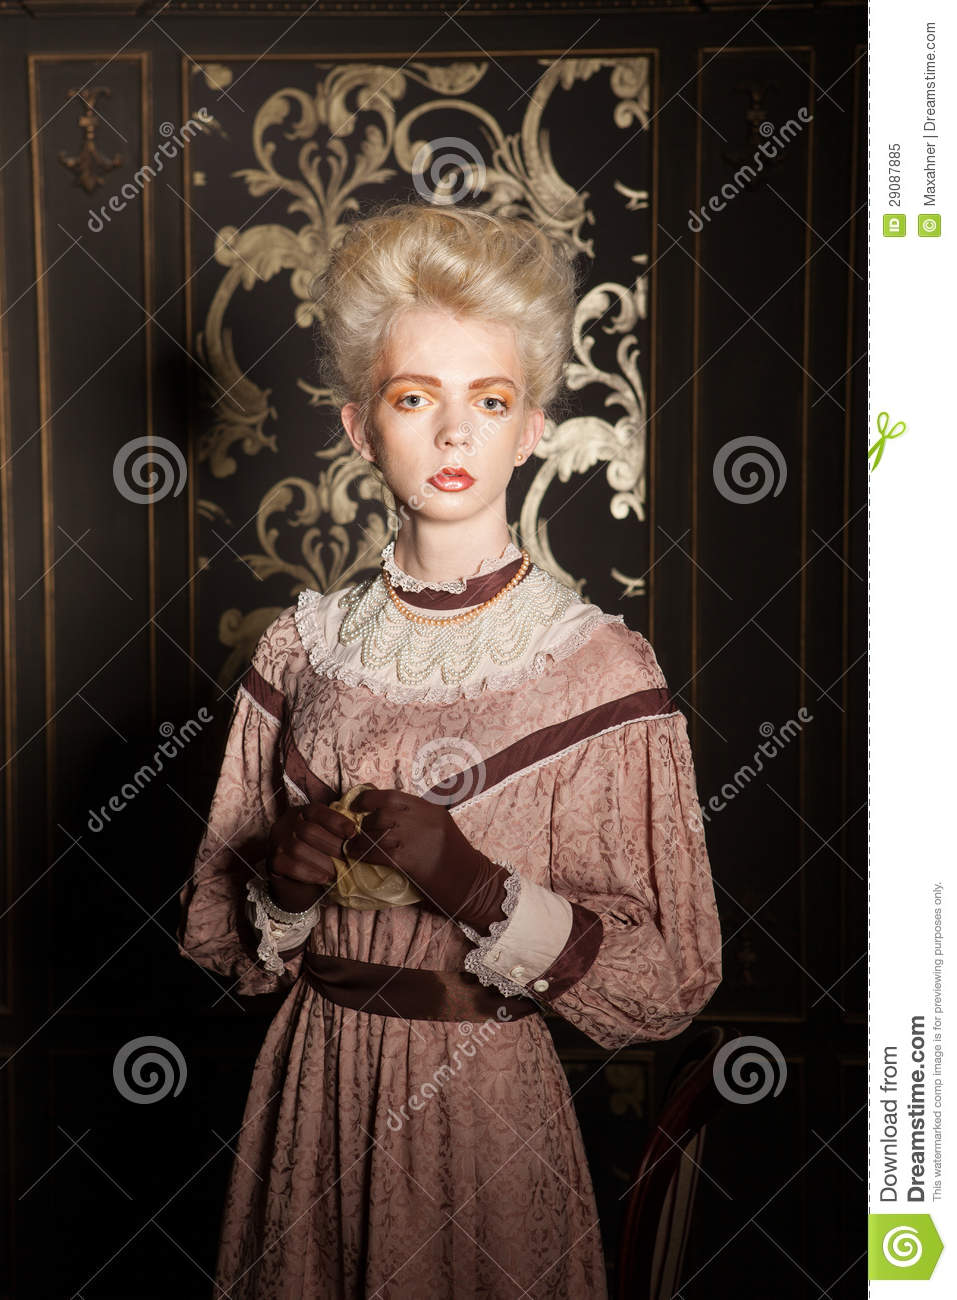 Old Fashioned Portrait Of A Guy In Women 39 S Clothing